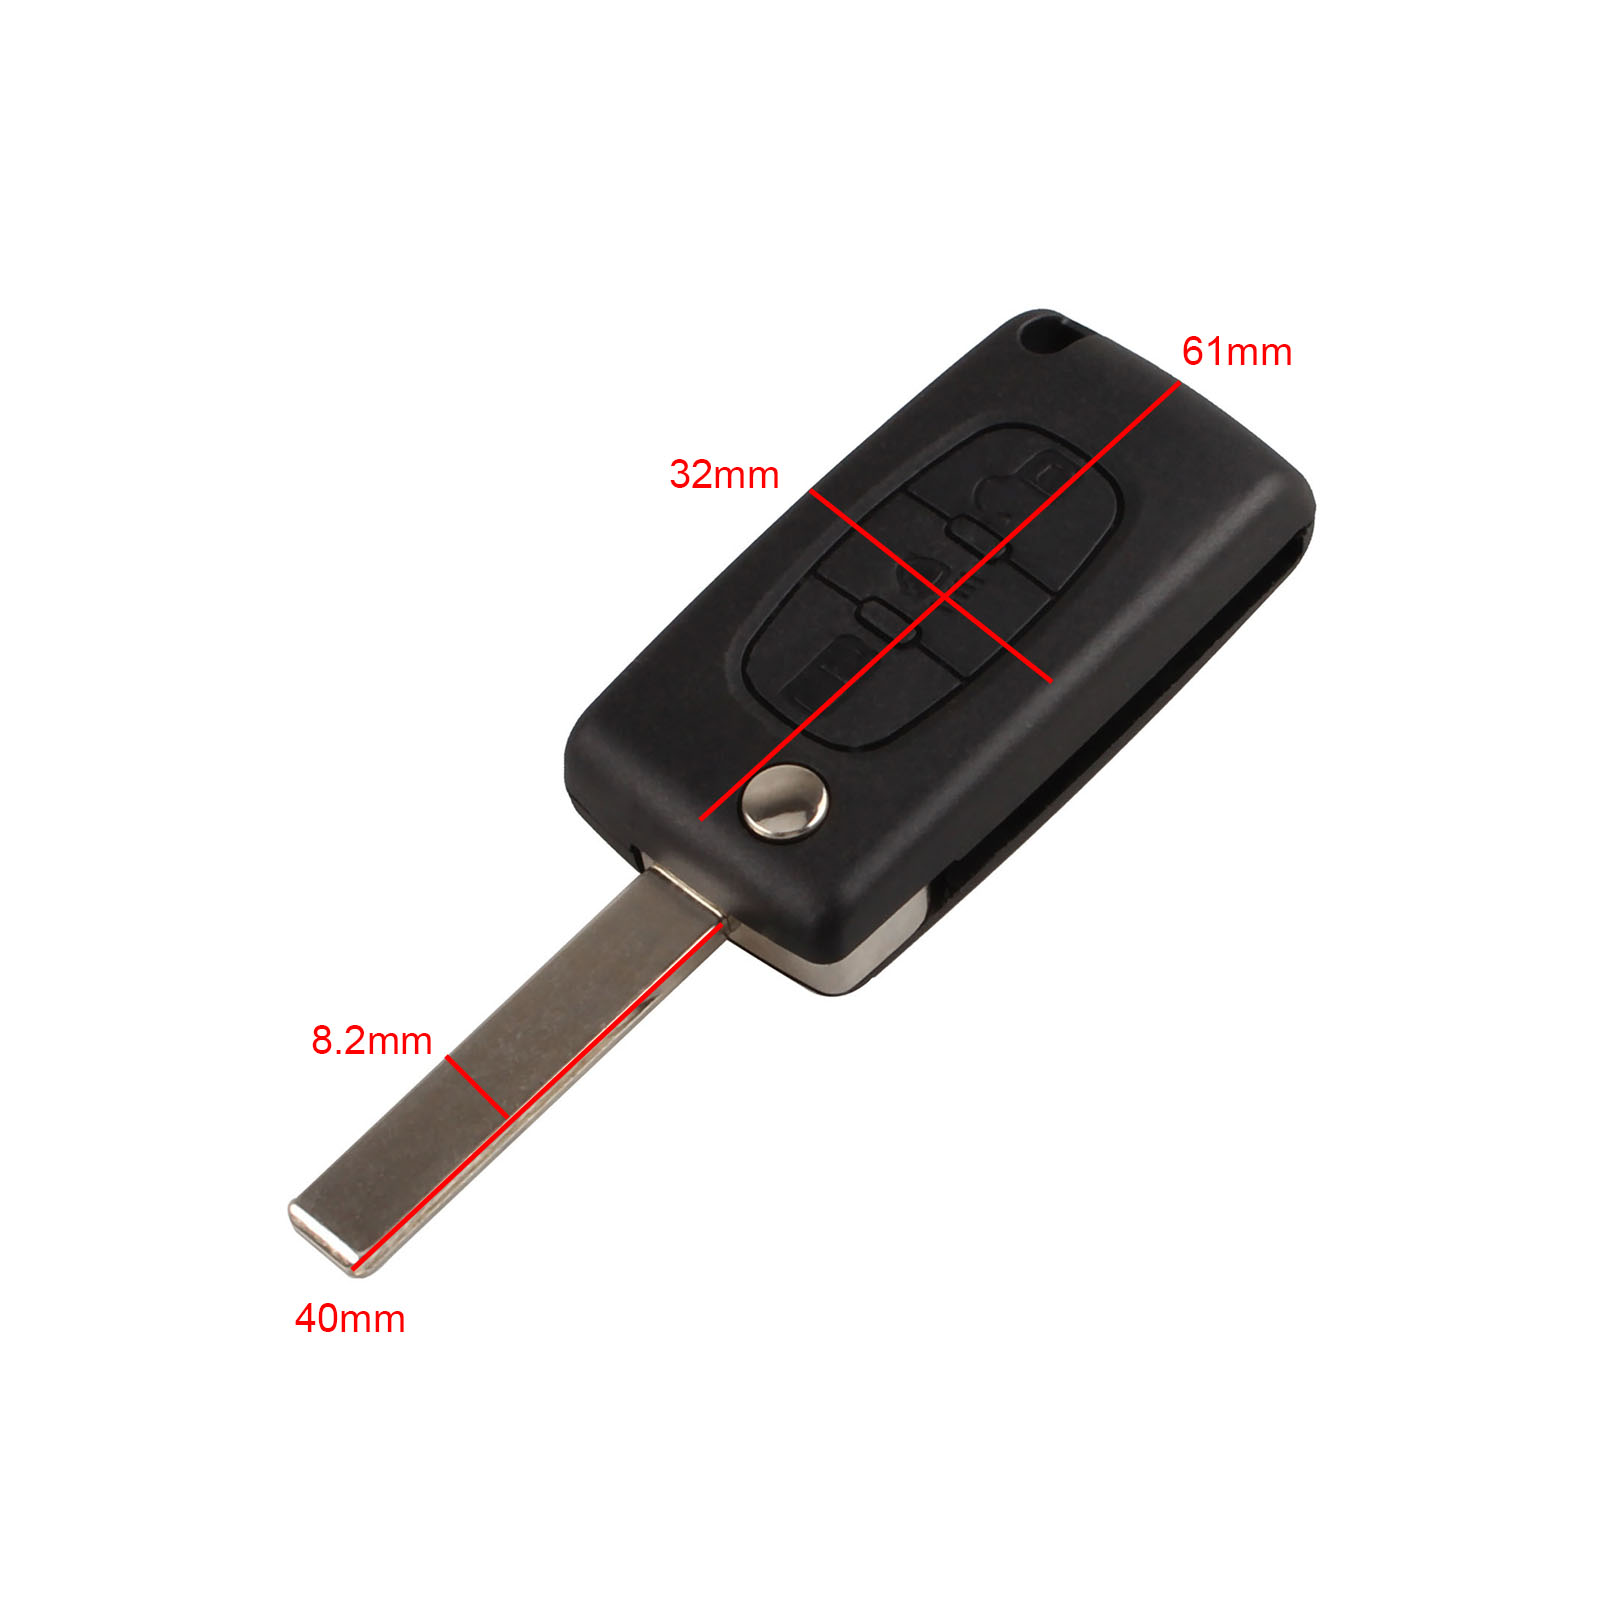 Image 4 - 3 Buttons Auto Flip Folding Remote Entry Key Shell Case Cover Replacement Car Key Fob For Citreon C2 C3 C4 C5 C6 Blank Blade-in Car Key from Automobiles & Motorcycles